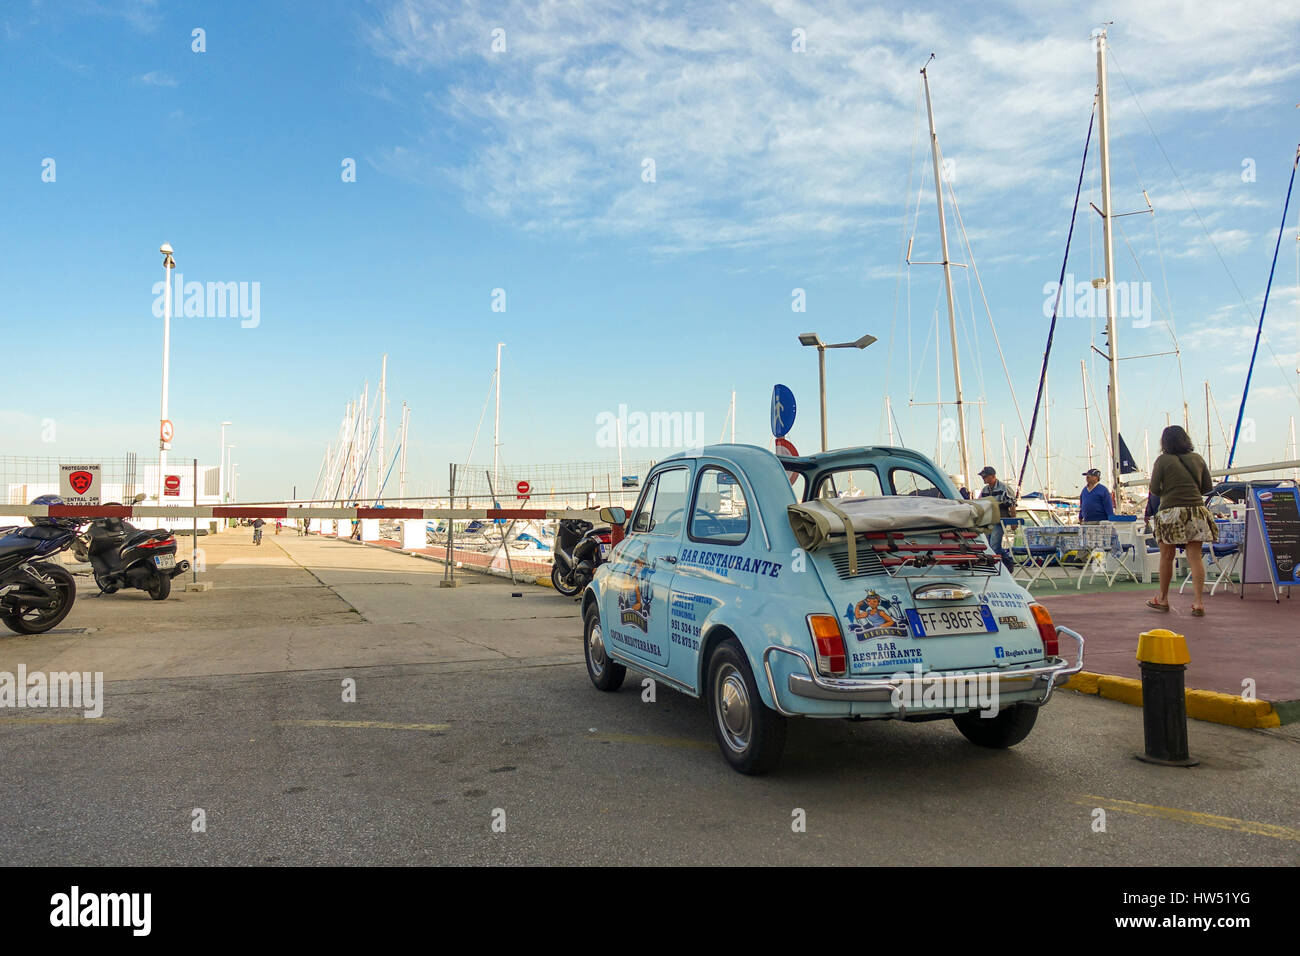 Fiat Parked As Restaurant Promotion In Port Of Fuengirola - Fiat promotion